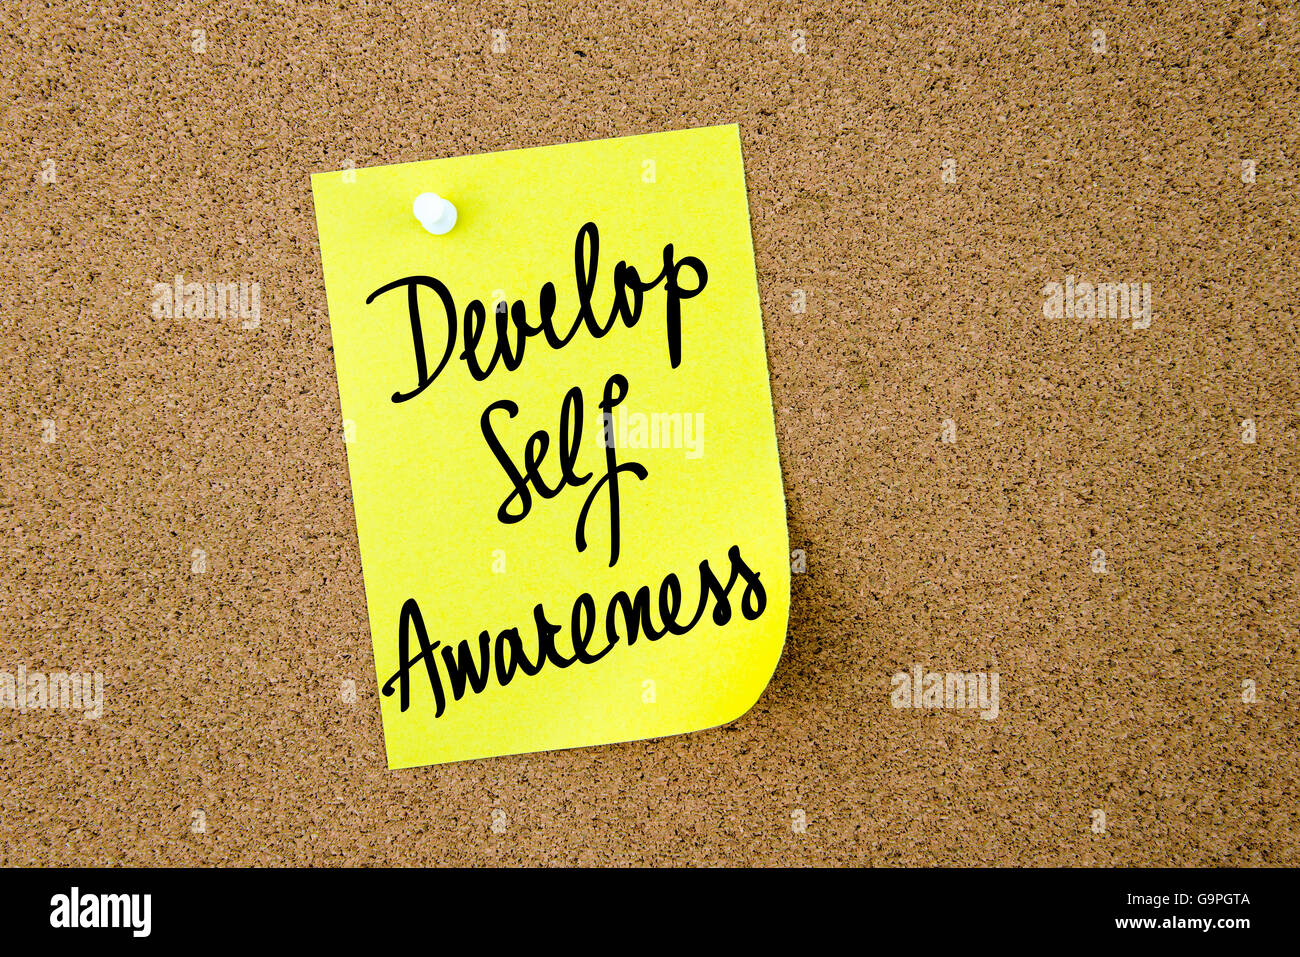 Develop Self Awareness written on yellow paper note pinned on cork board with white thumbtacks, copy space available - Stock Image